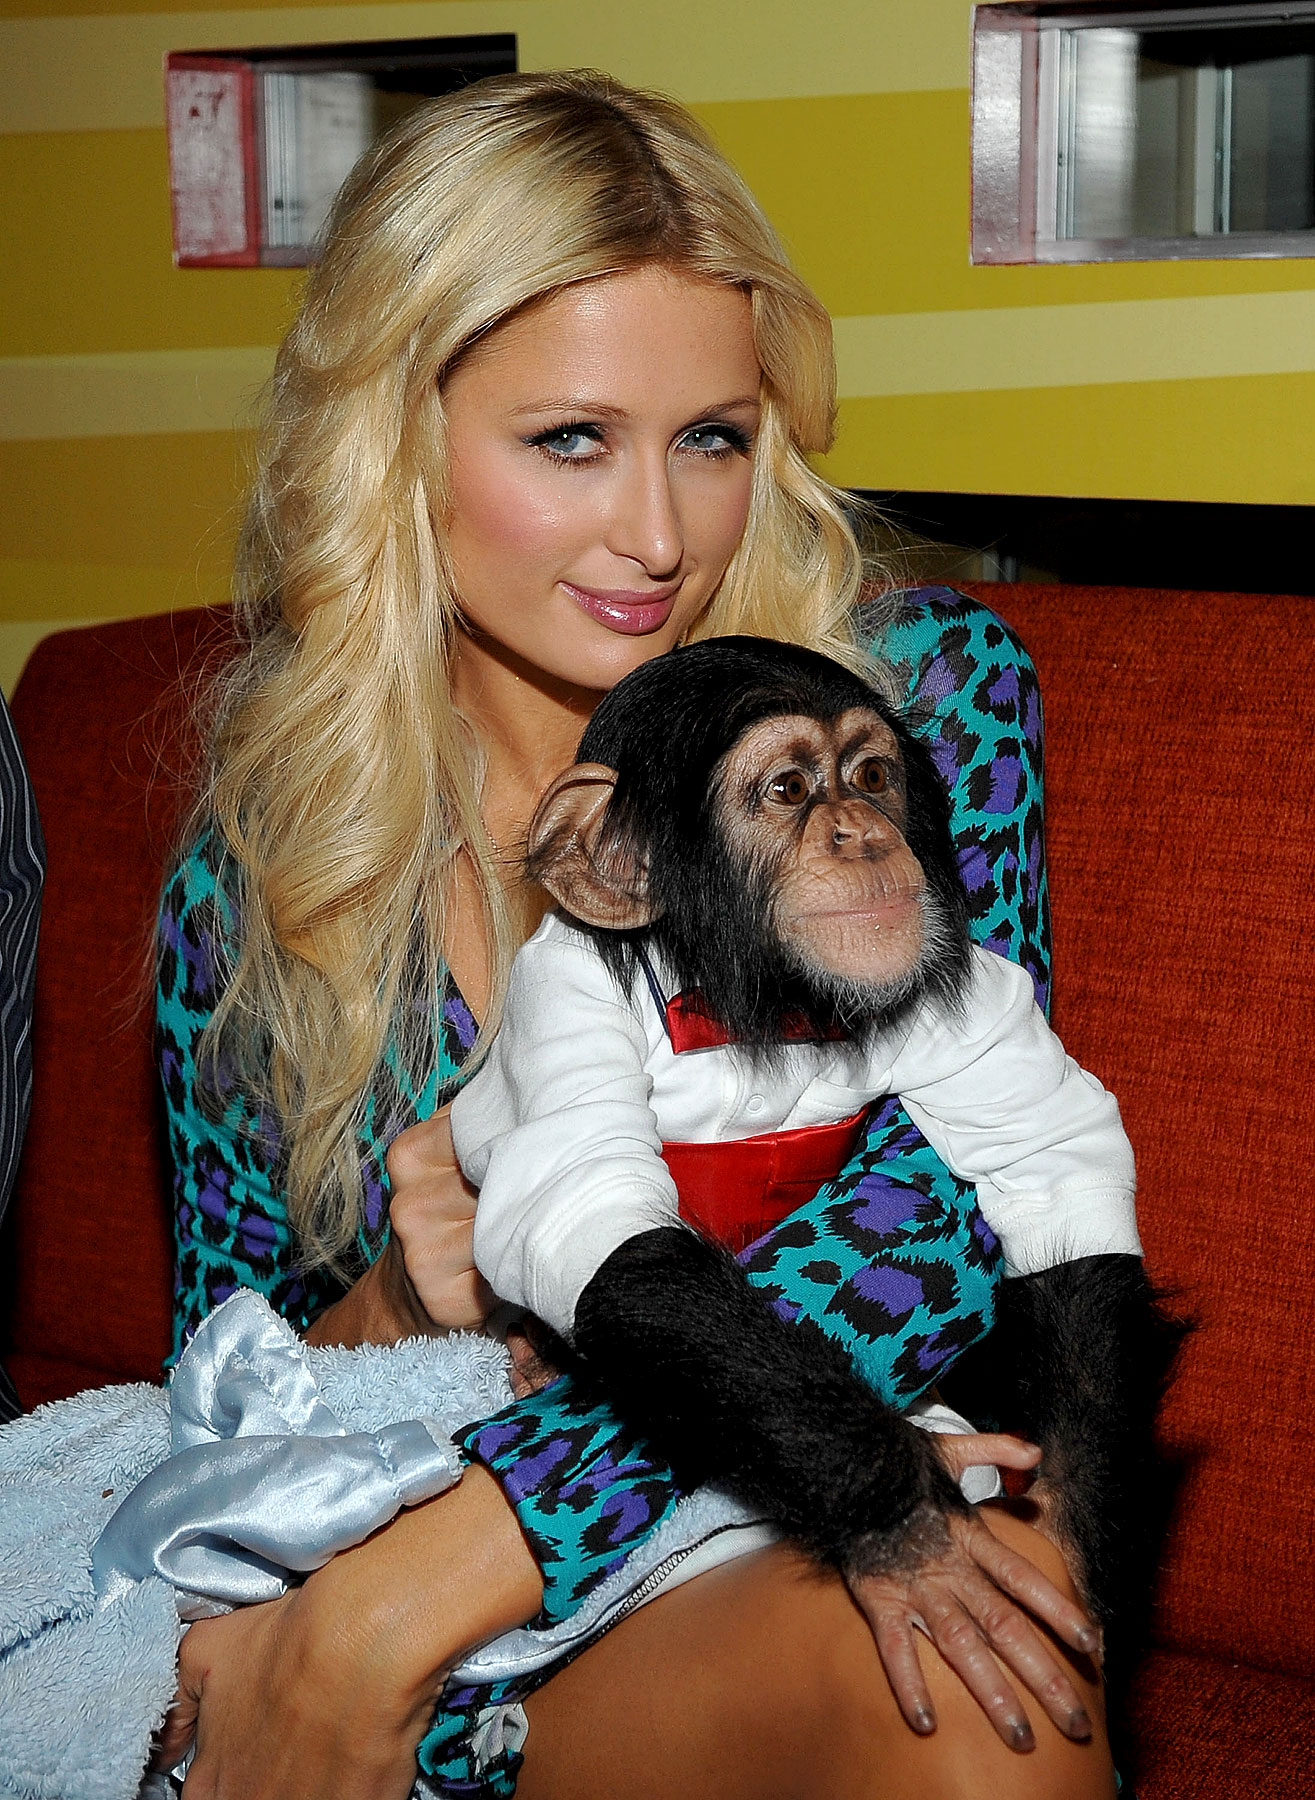 PHOTO GALLERY: Paris Hilton Monkeys Around